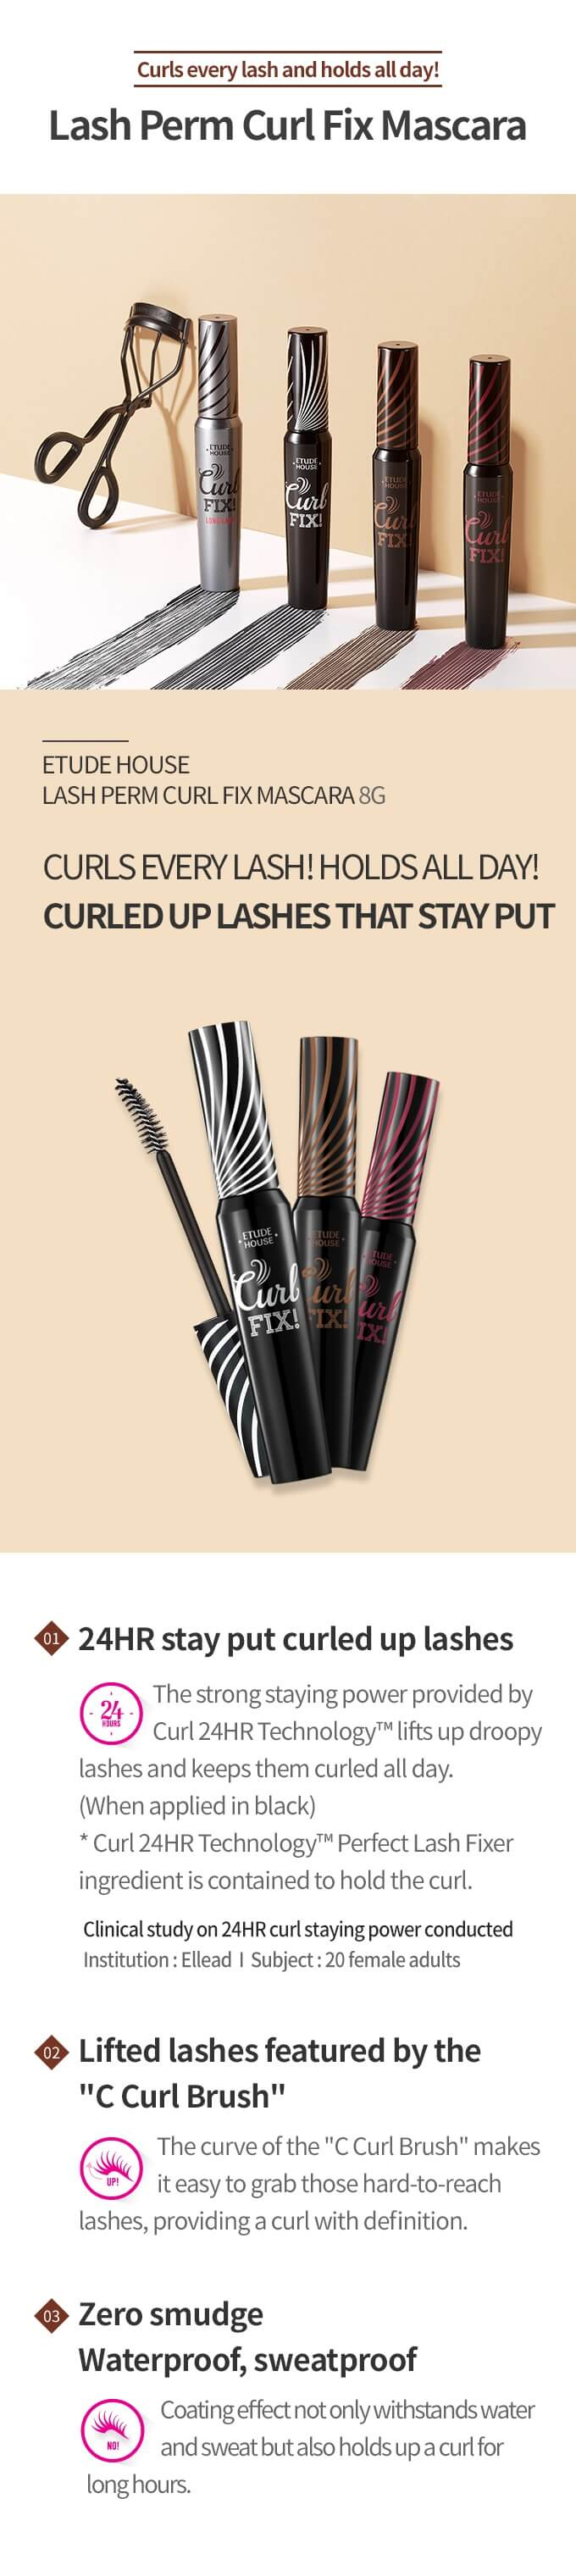 Etude House Lash Perm Curl Fix Mascara [#1 Black]